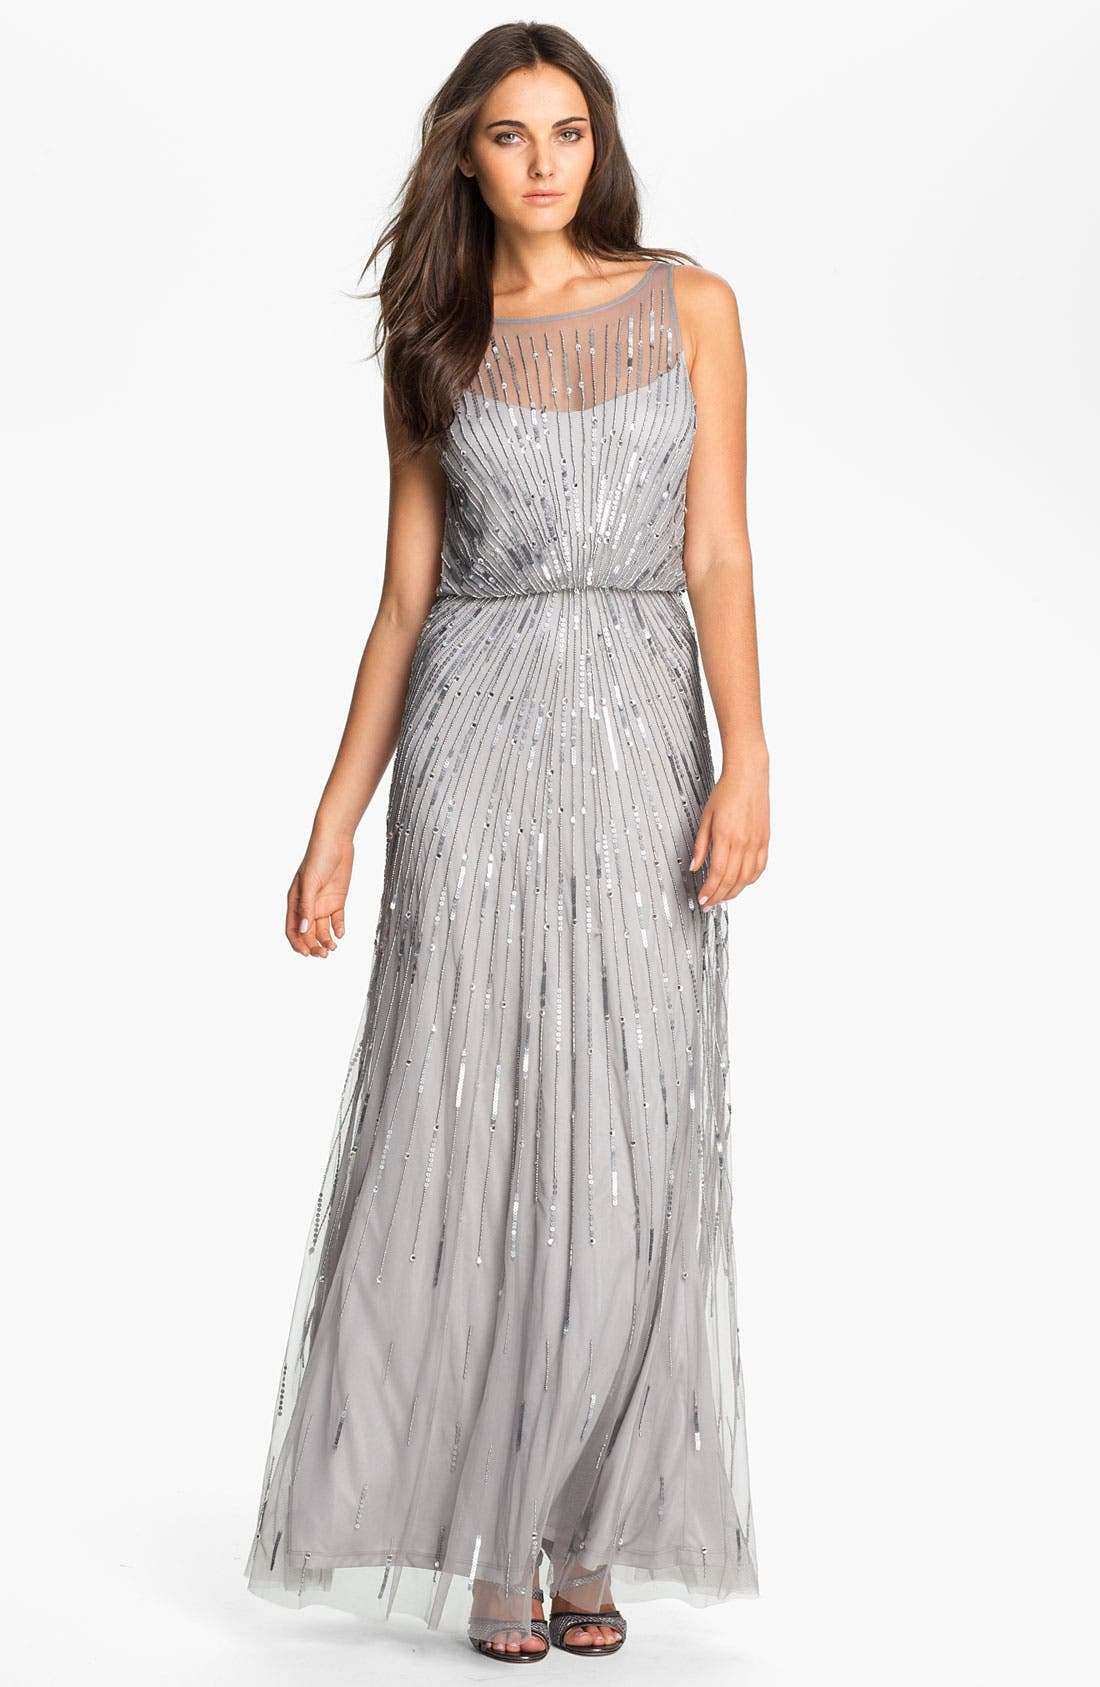 Alternate Image 1 Selected - Aidan Mattox Illusion Yoke Sequin Mesh Gown (Online Only)